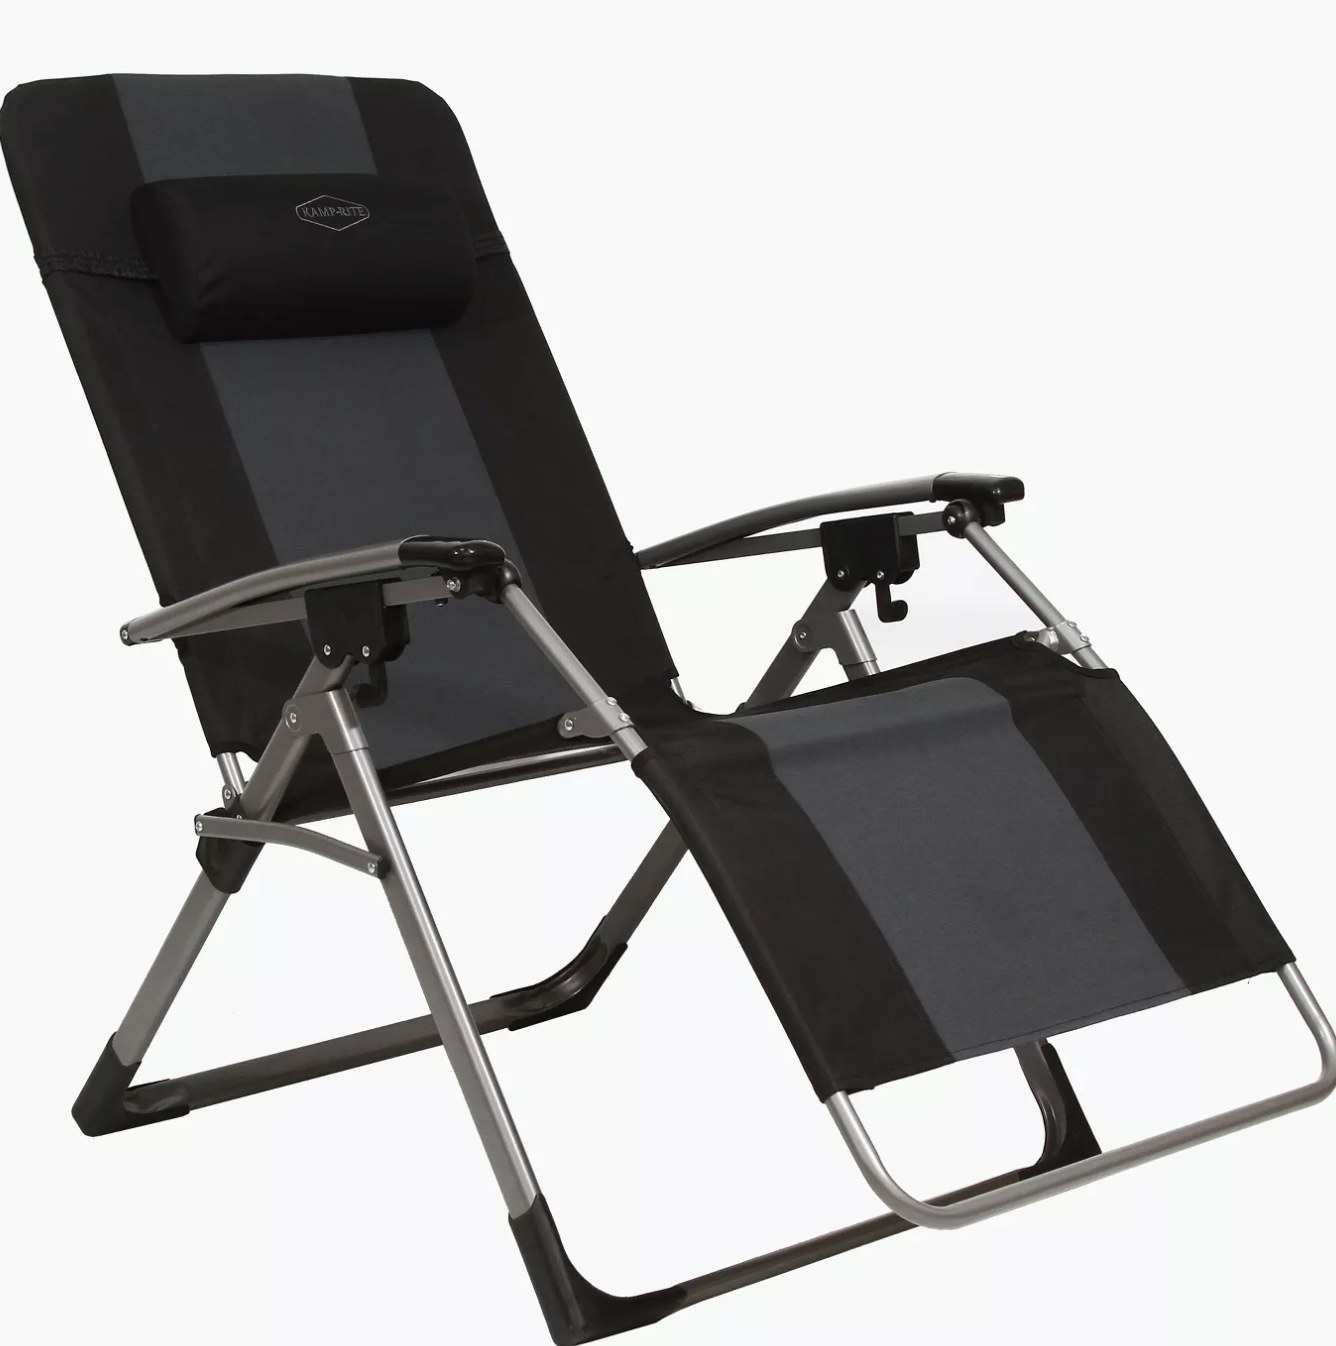 A black antigravity folding reclining chair